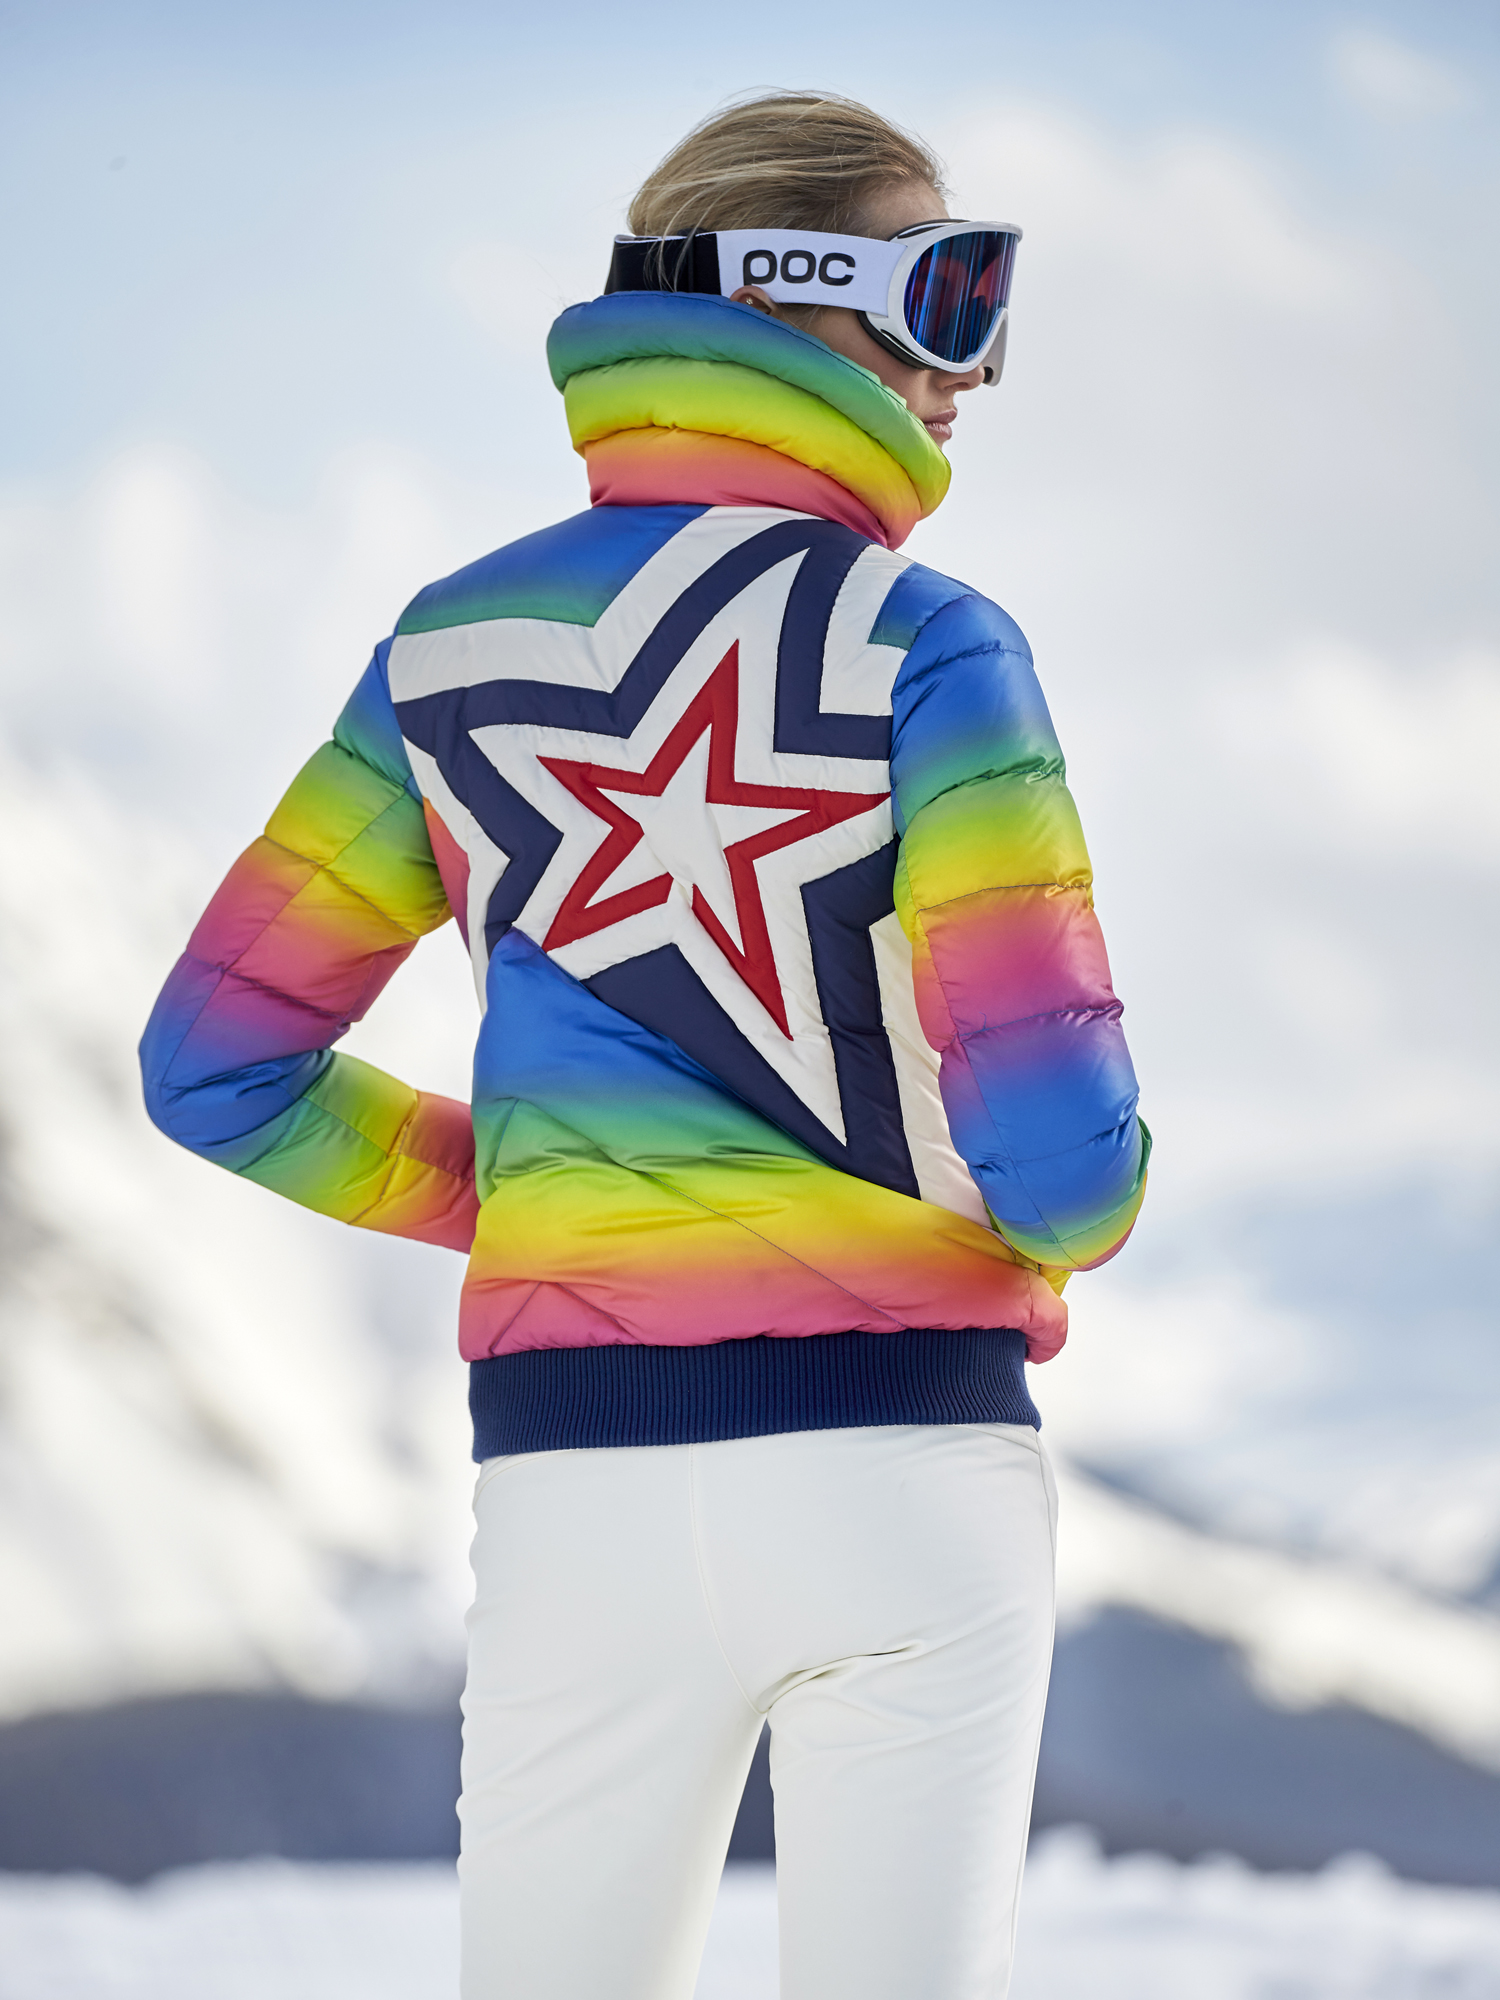 Neon ski wear trends woman in white pants and colorful neon jacket large futuristic ski glasses